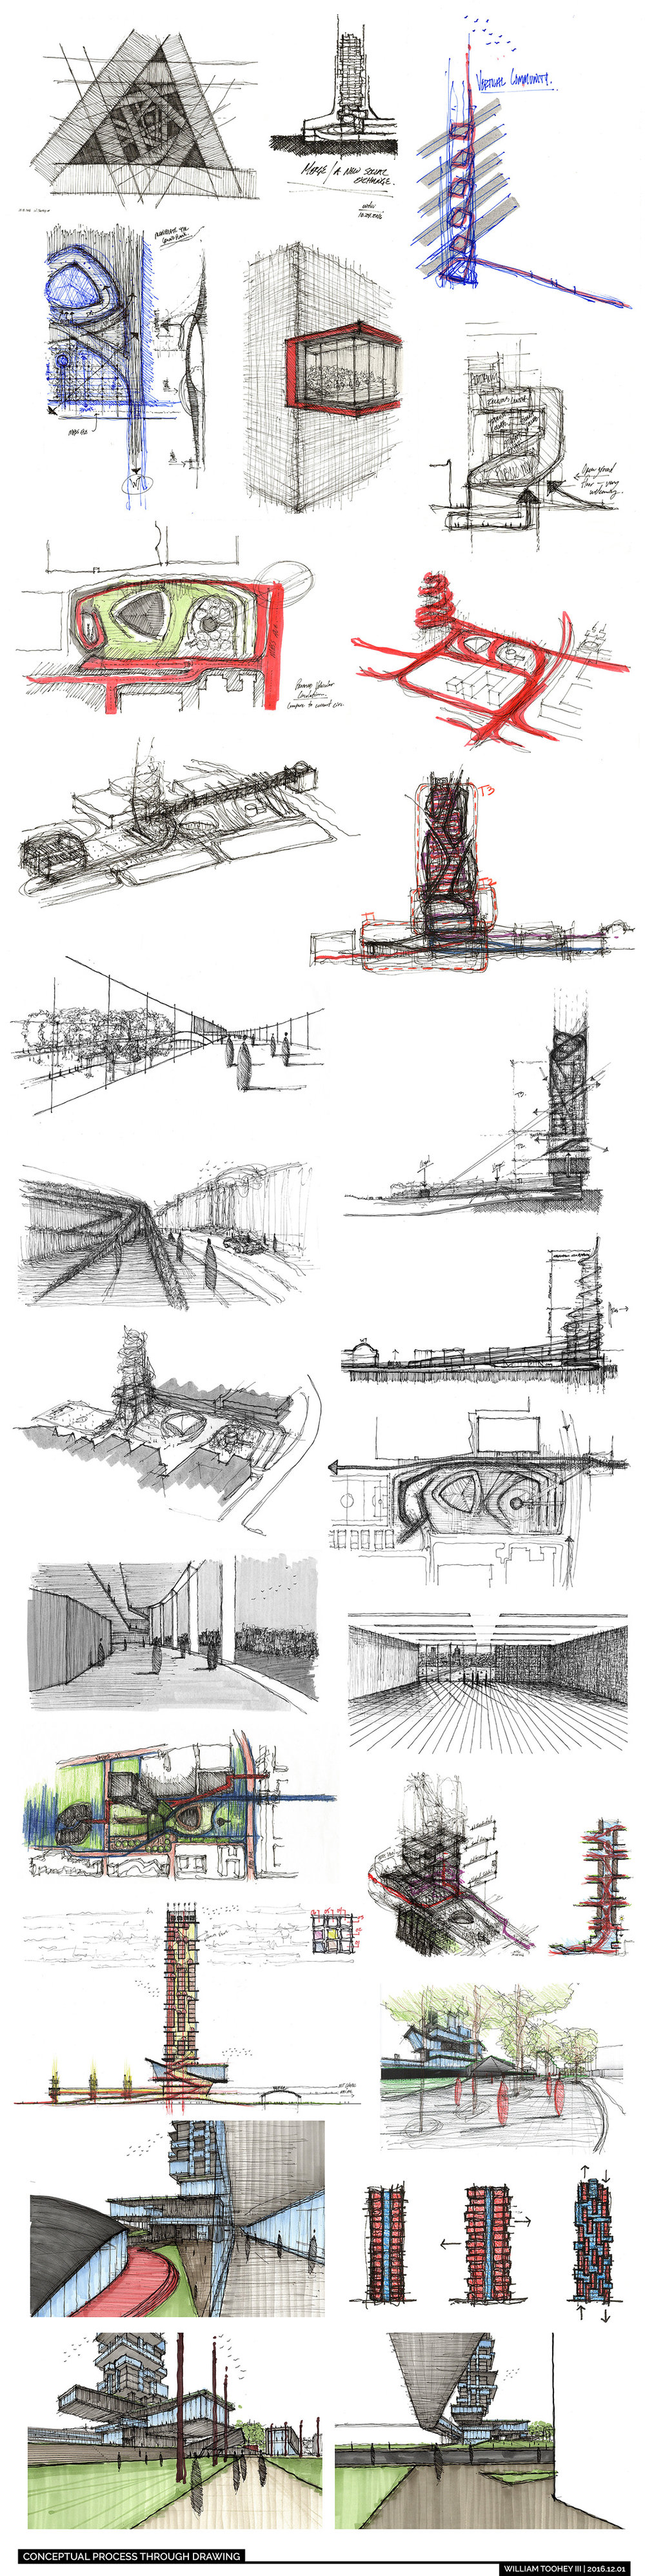 Final_18x72_03 Sketches_USE.jpg